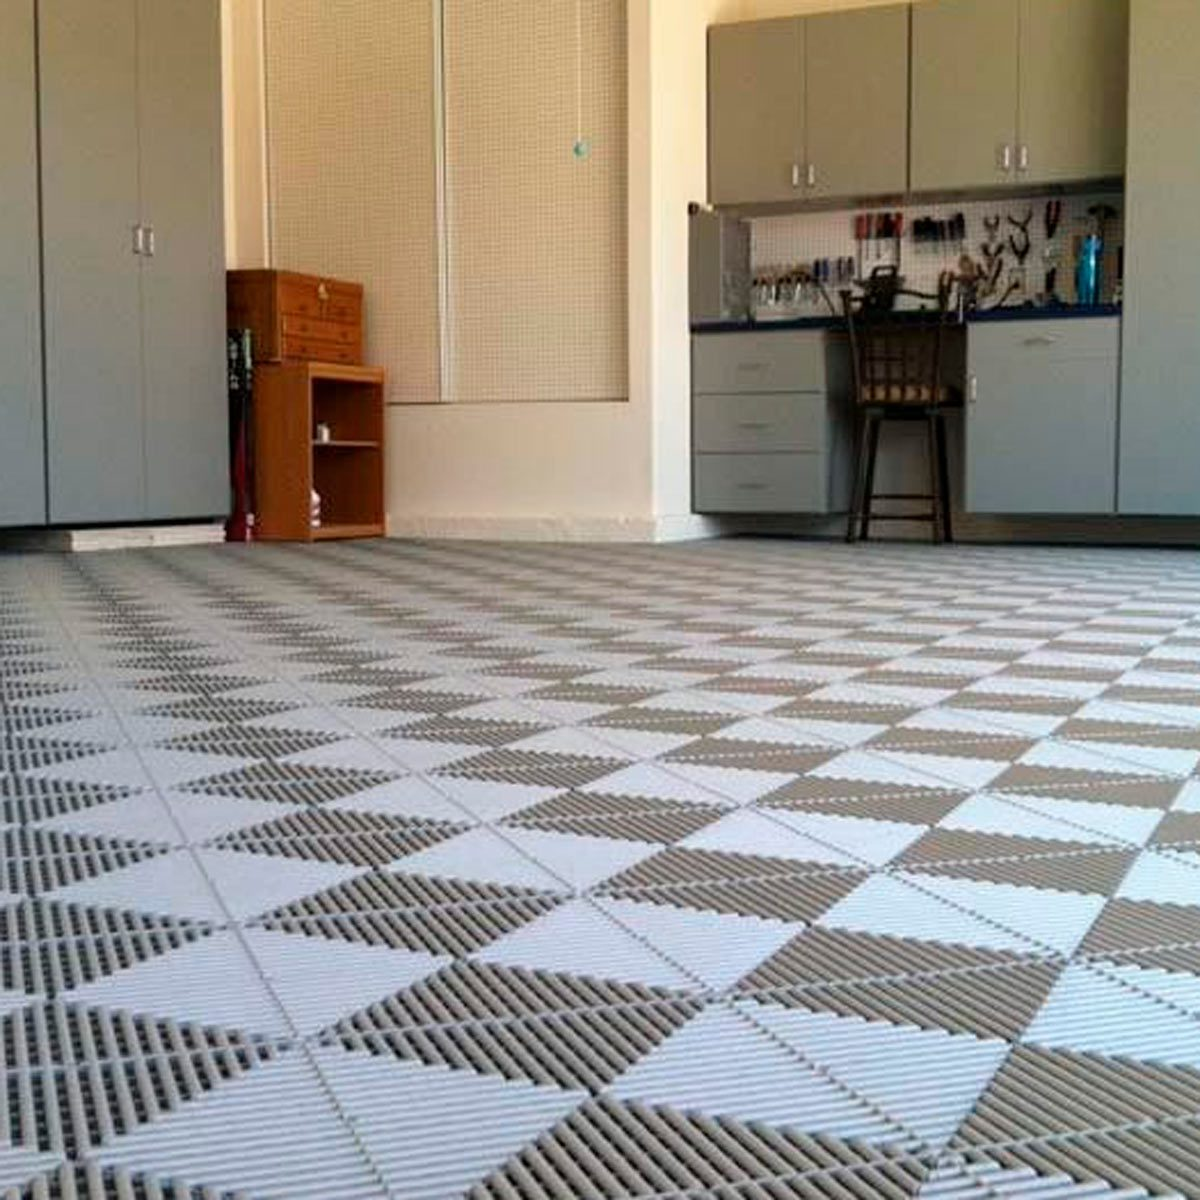 Floor Tile Paint Yes You Can Paint Floor Tiles Here S: The Top 10 Flooring Trends For 2019